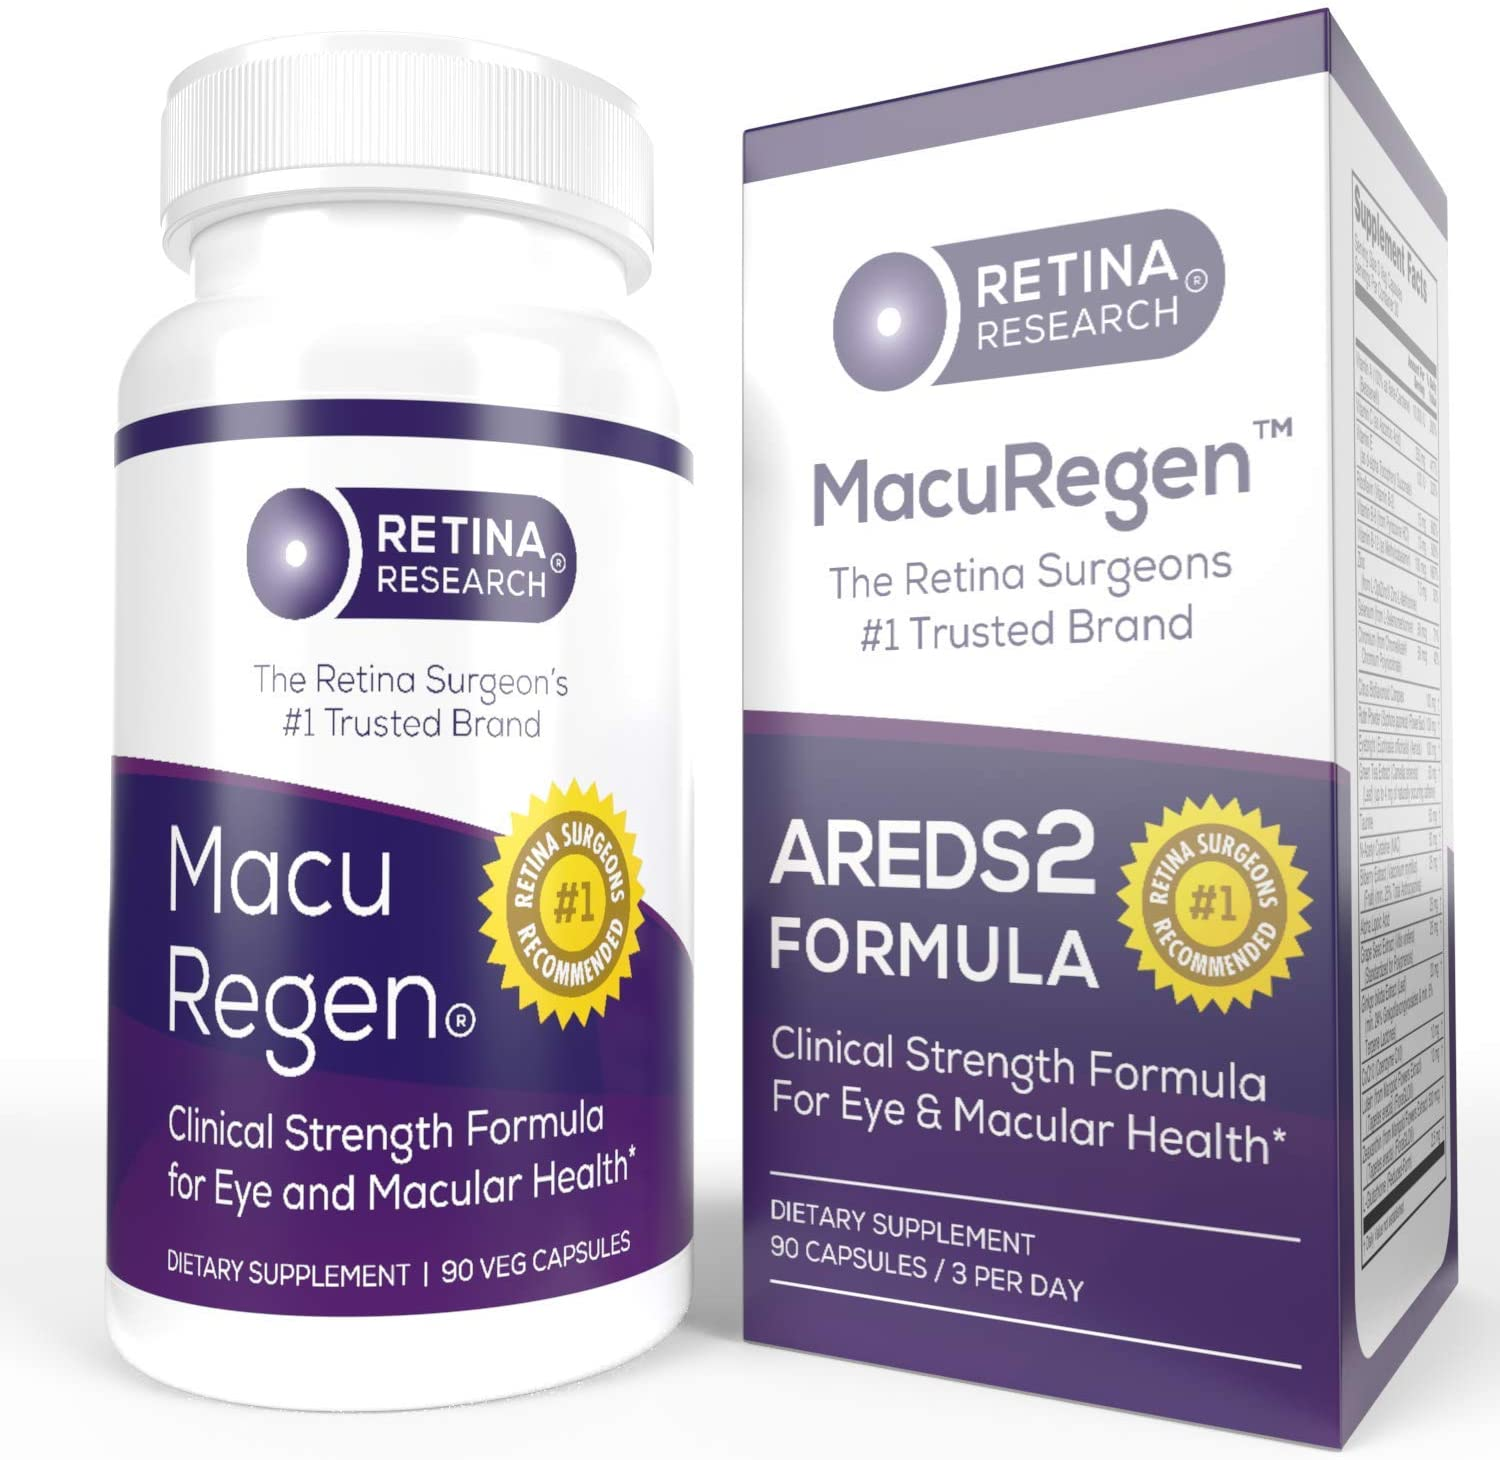 MacuRegen AREDS 2 Eye Vitamins - 23-in-1 Macular Health Formula - Recommended by Retina Surgeons - 100% Natural - Made in USA - 90 Capsules - by Retina Research